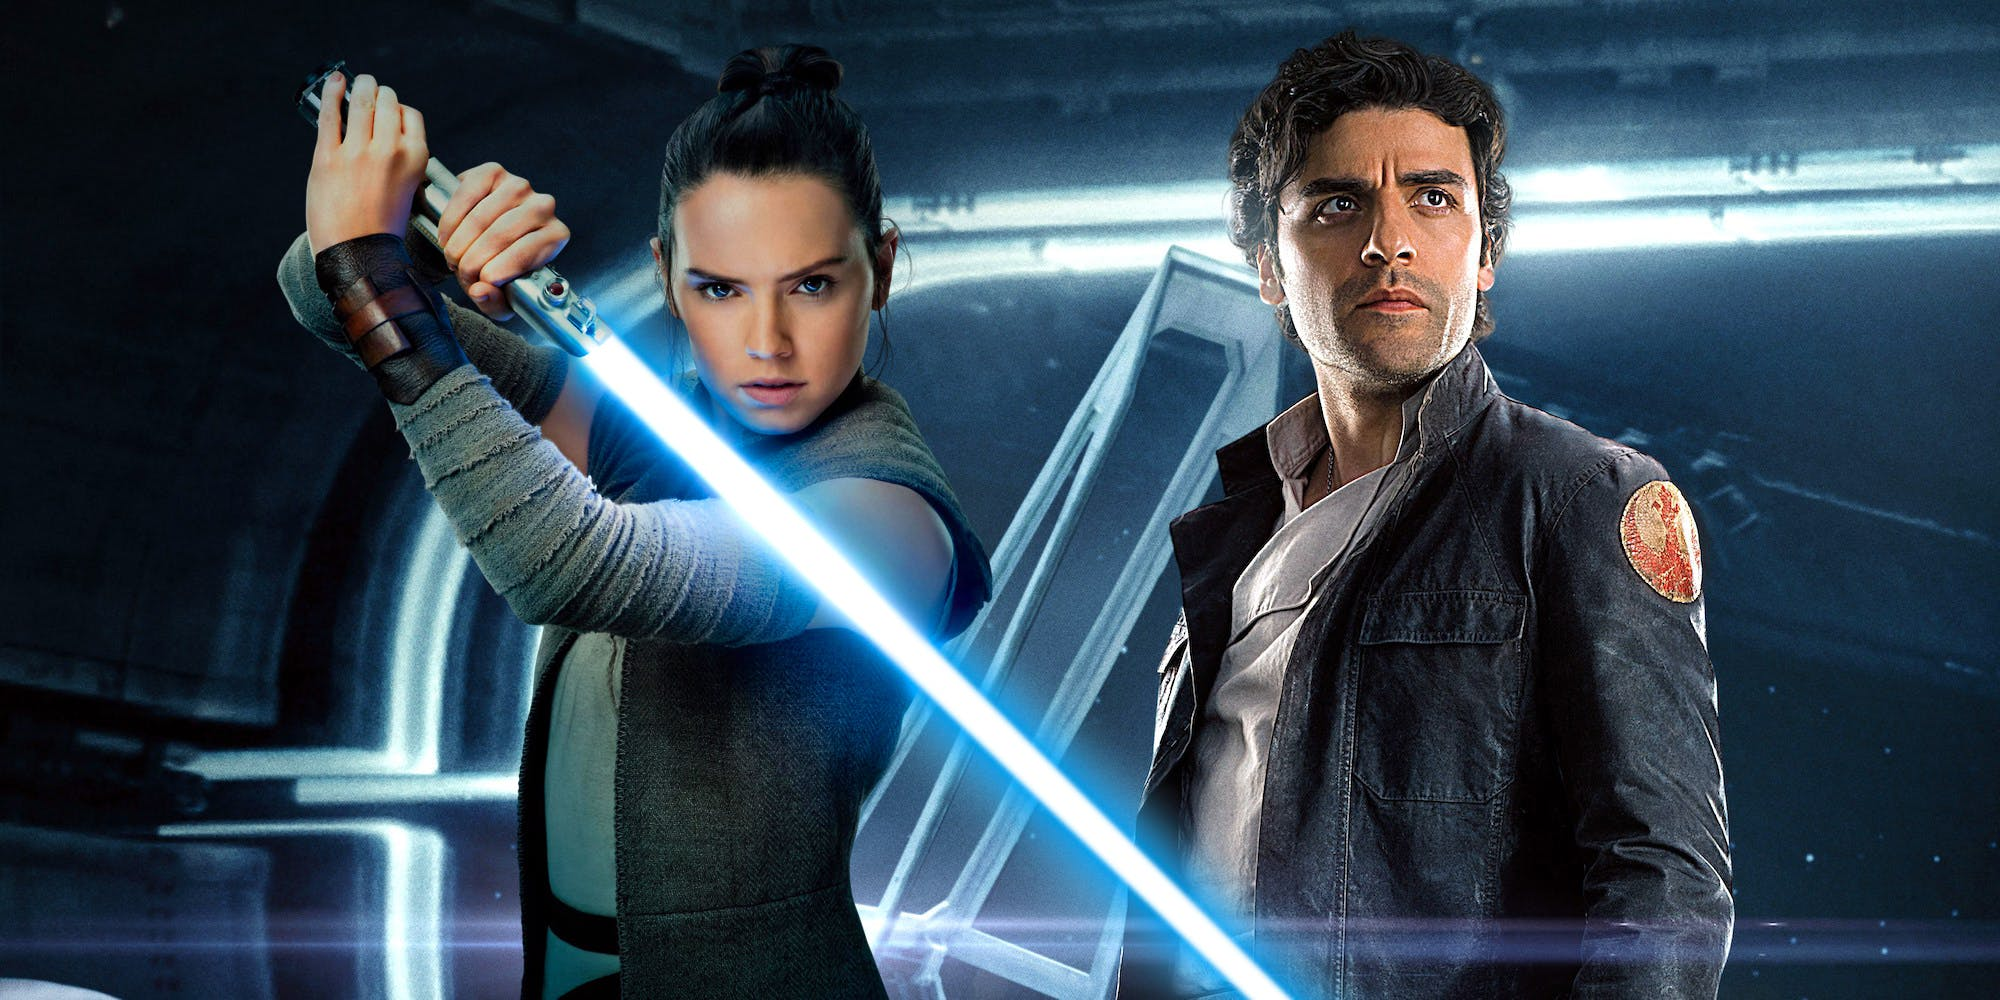 New Leak Claims To Have Revealed Star Wars: Episode IX's Title